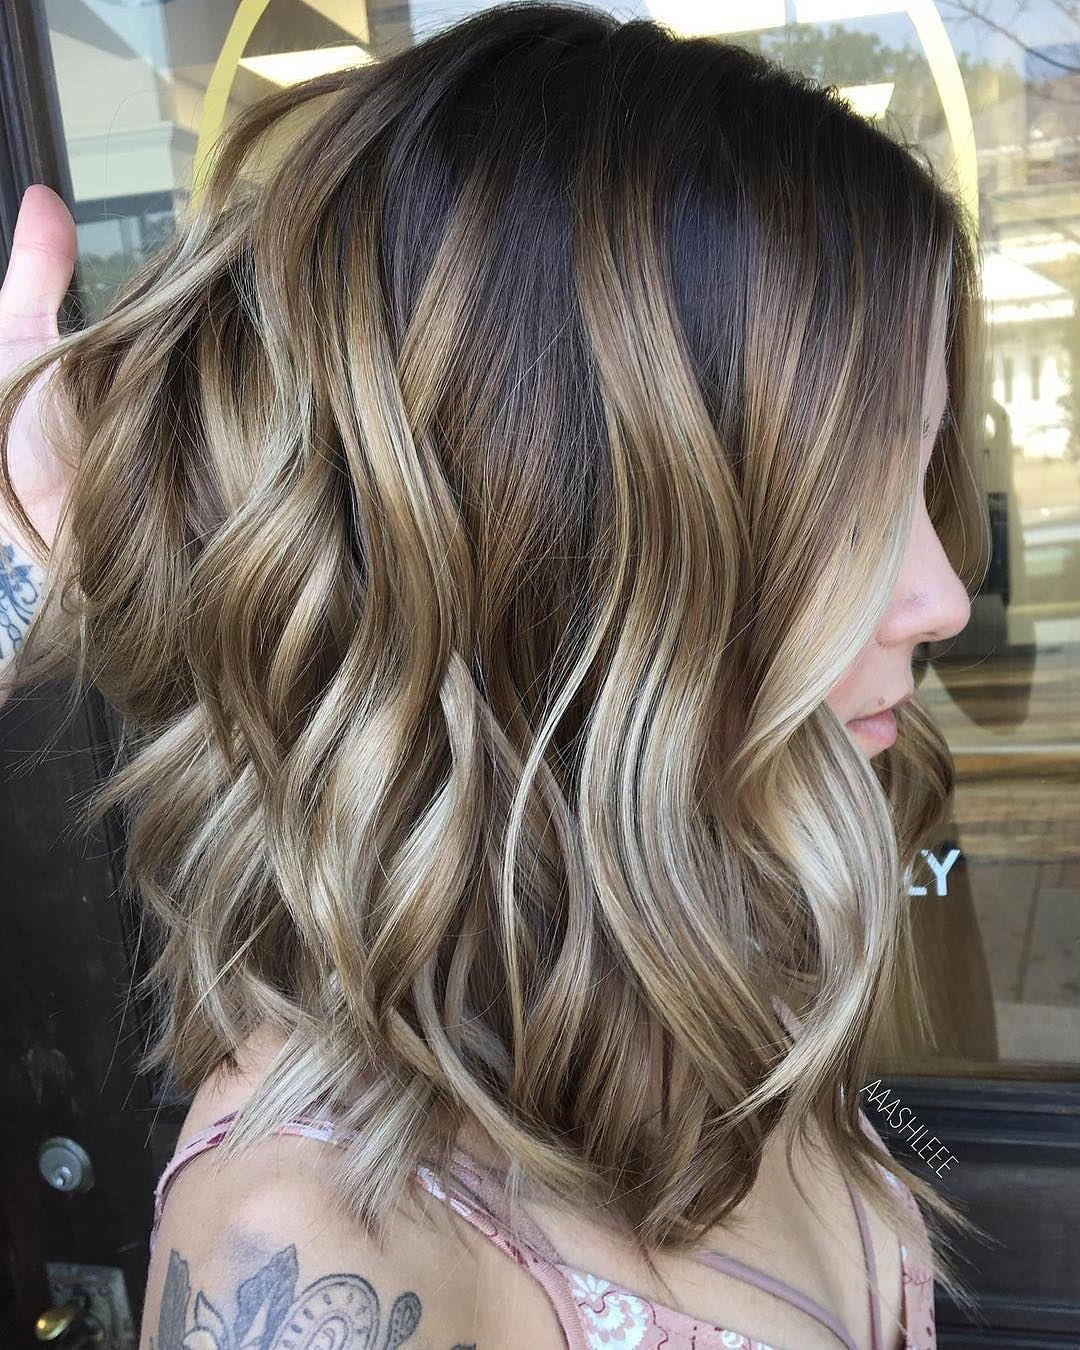 Most Recent Feathered Pixie With Balayage Highlights Regarding 10 Ombre Balayage Hairstyles For Medium Length Hair, Hair Color  (View 11 of 20)